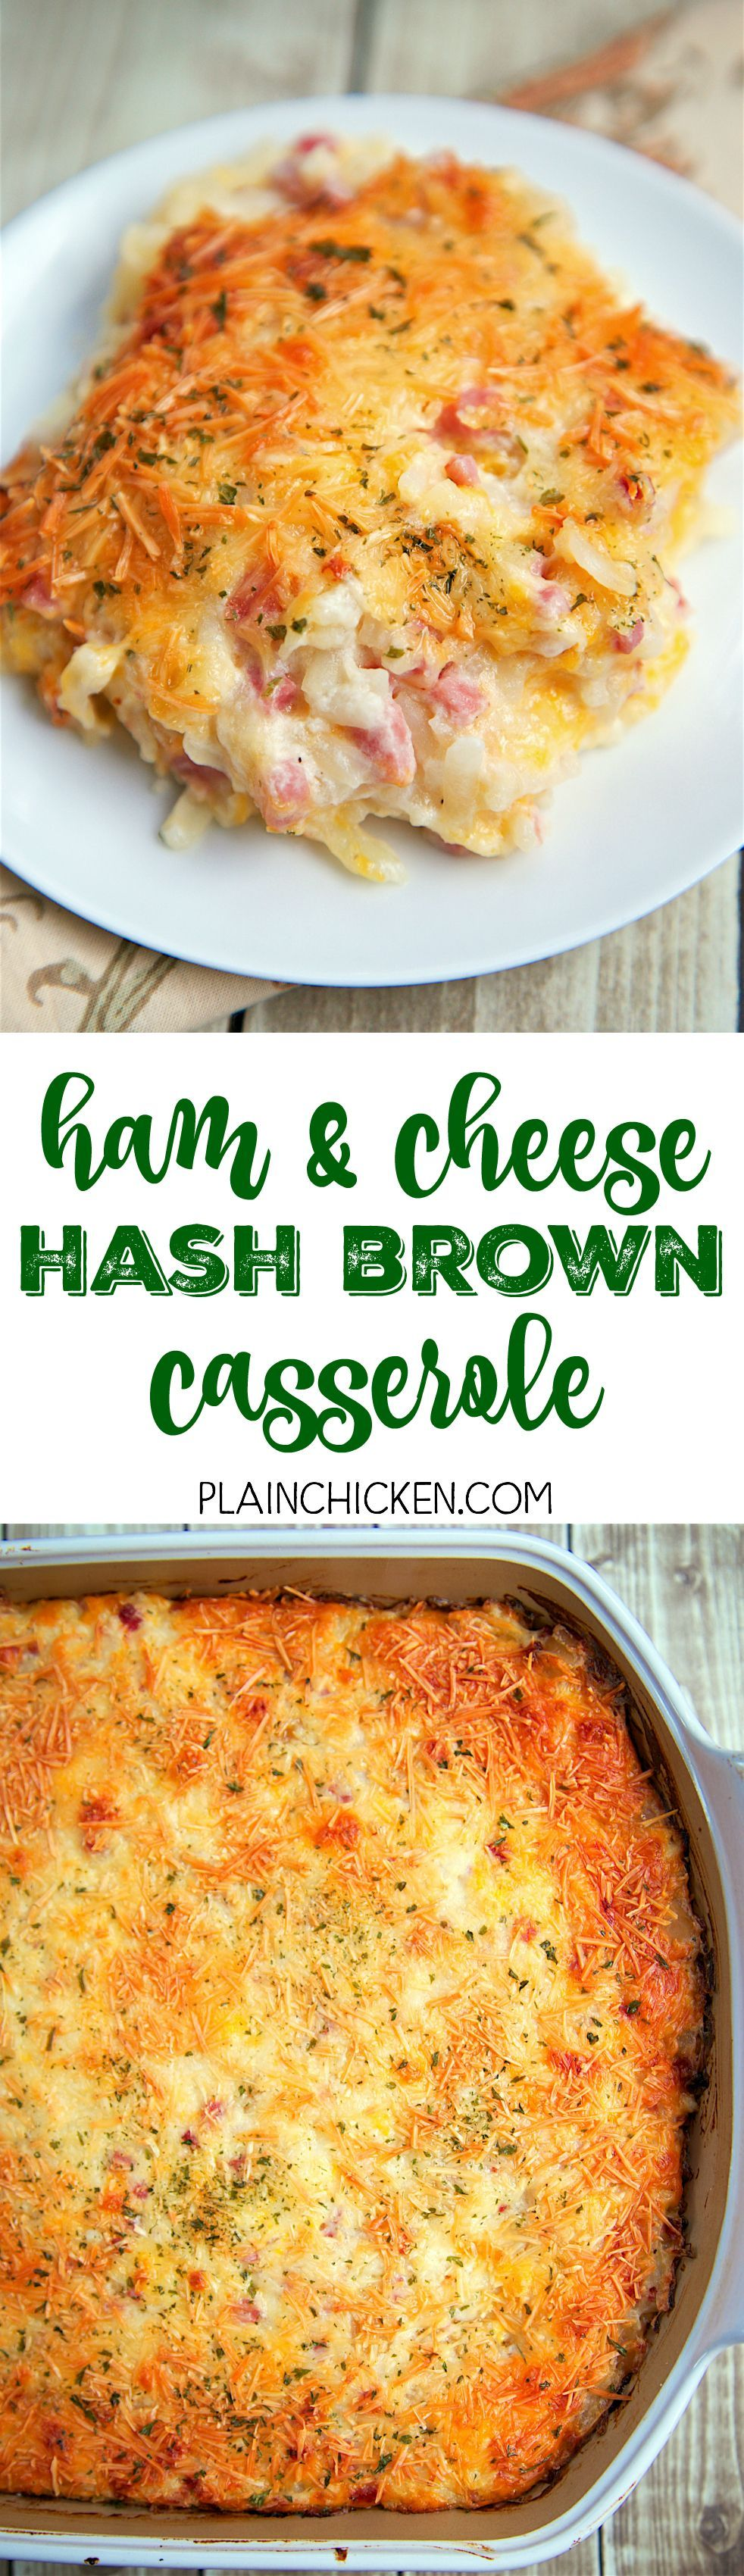 and Cheese Hash Brown Casserole - only 6 ingredients!! Hash browns, ham, parmesan cheese, cheddar cheese, cream of potato soup, and sour cream. YUM! He took one bite and couldn't stop raving out this casserole!! Can make ahead of time and refrigerate or freeze for later. A new favorite in our house!